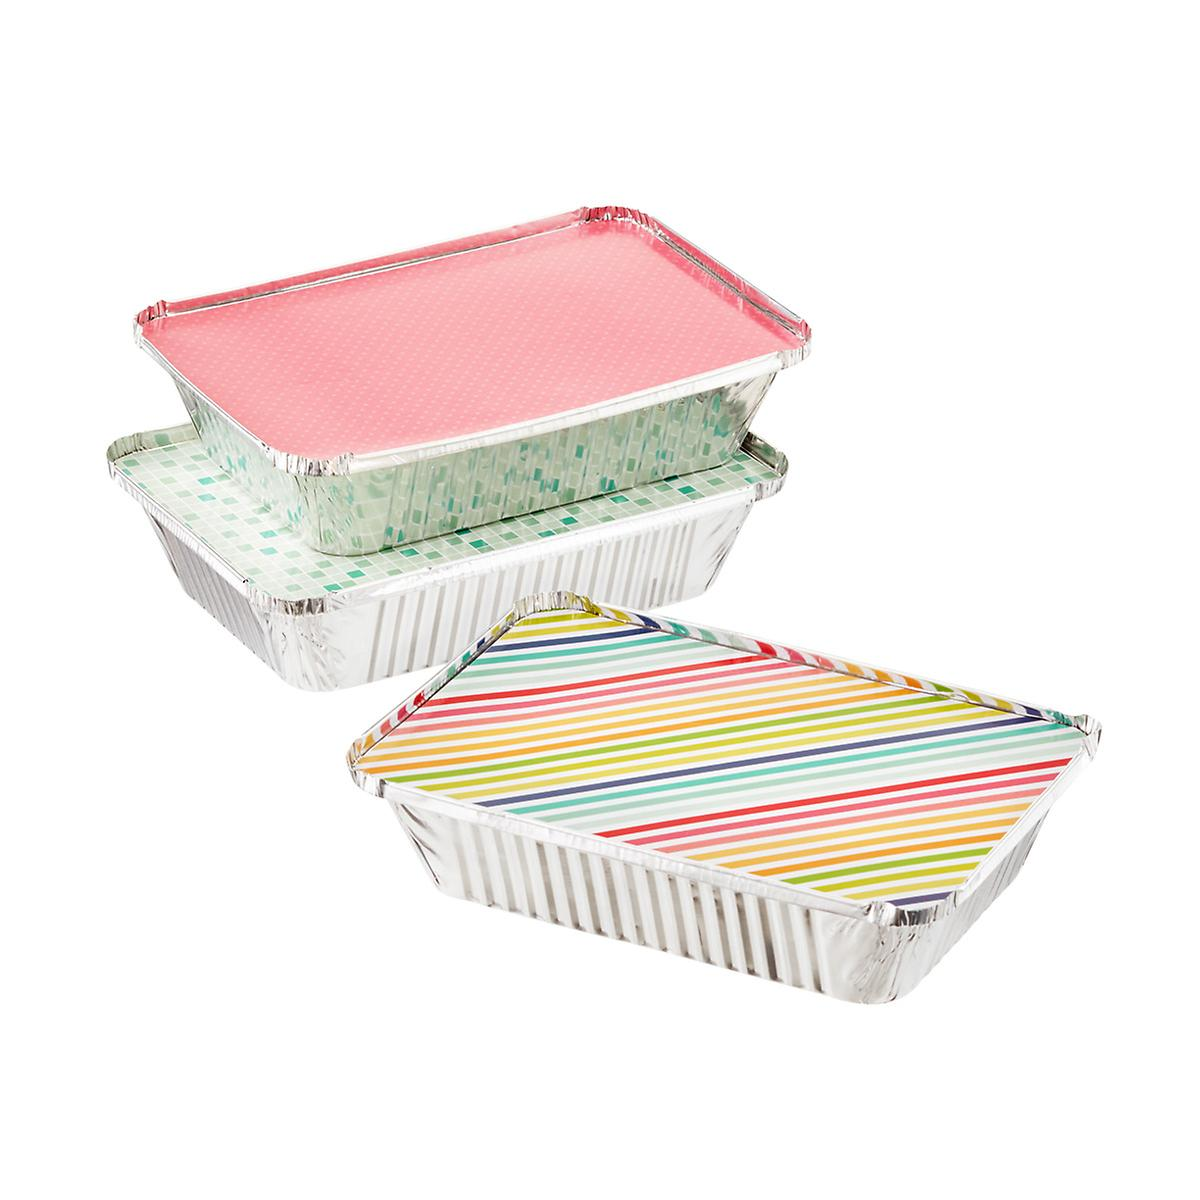 Large Brights Foil Baking Tins with Lids